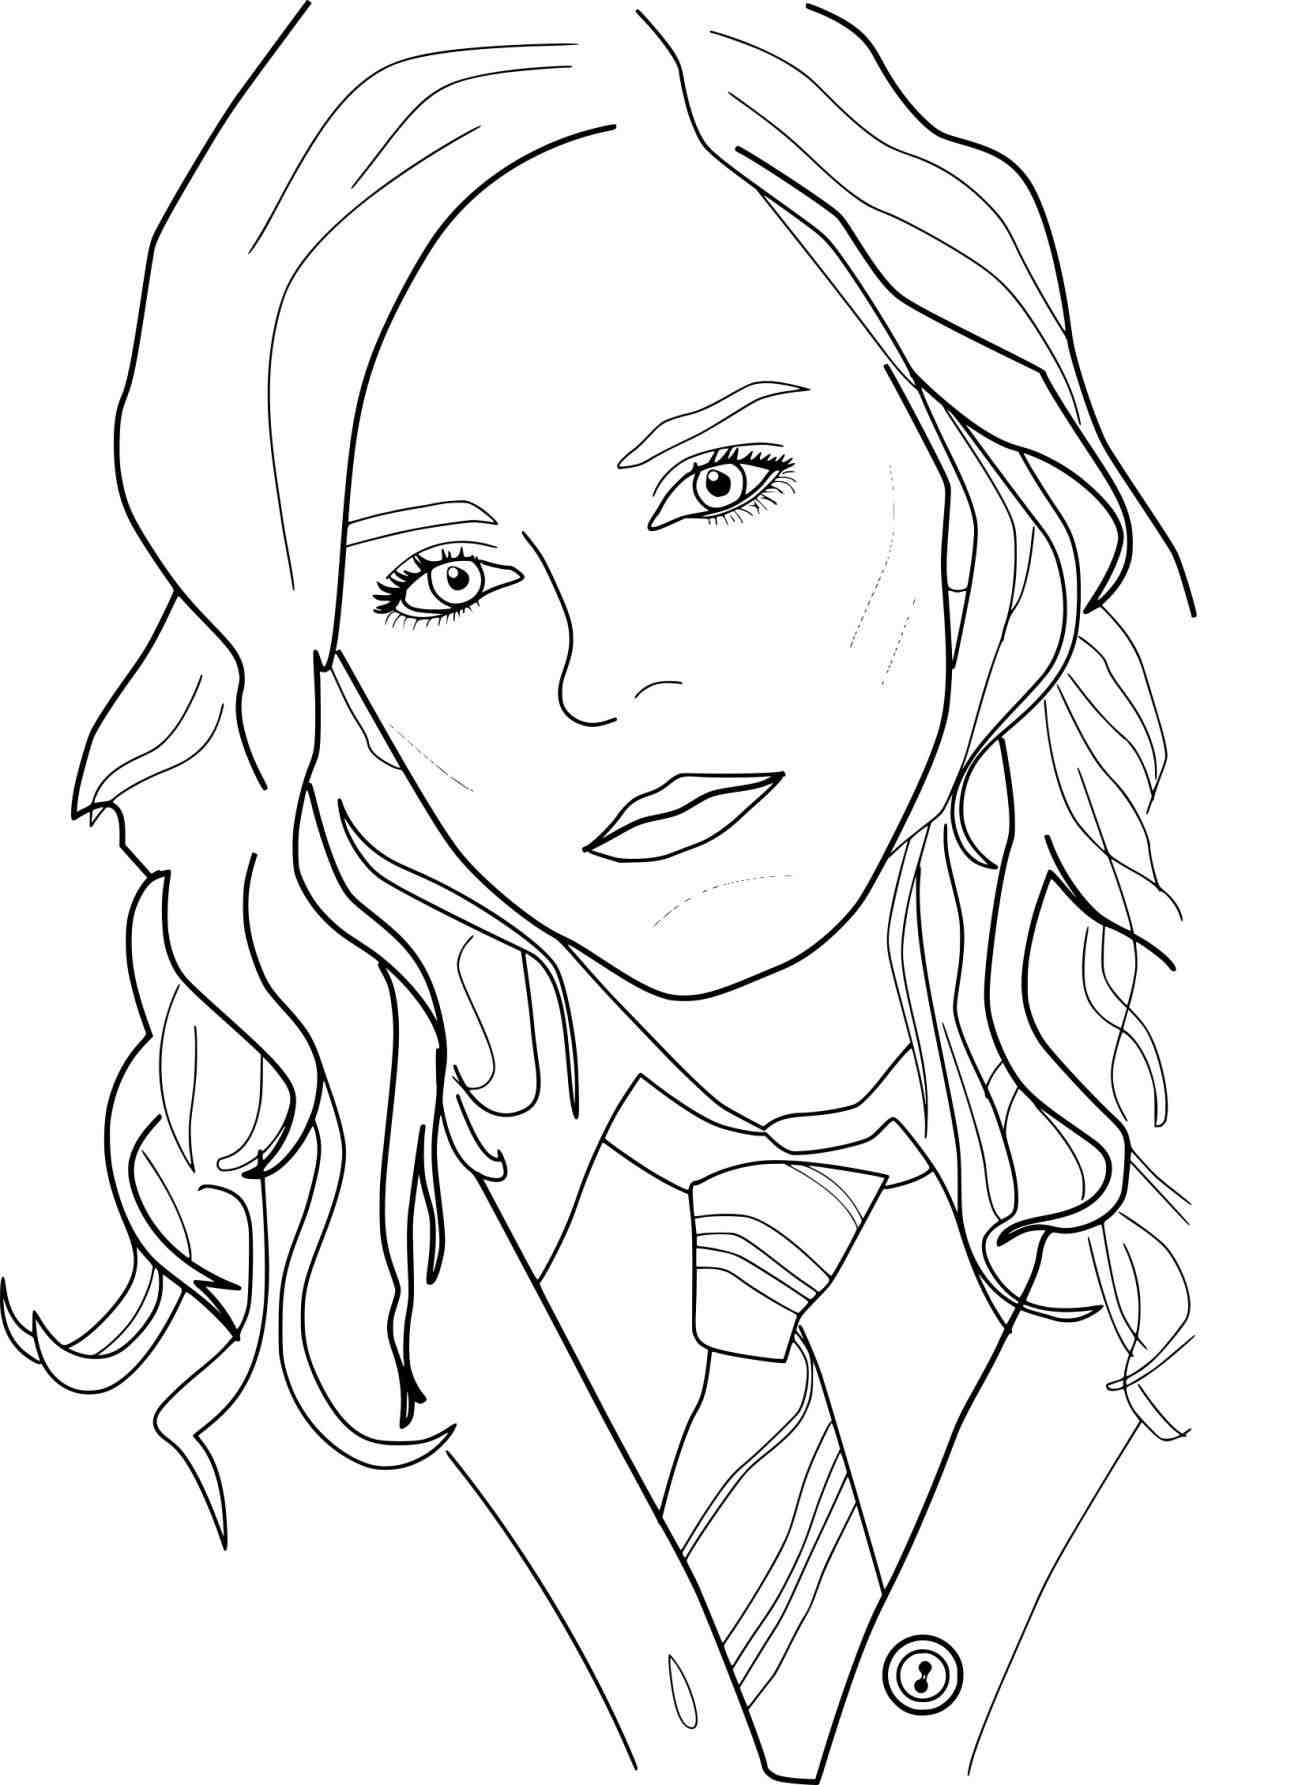 Hermione Granger Coloring Pages At Getcolorings